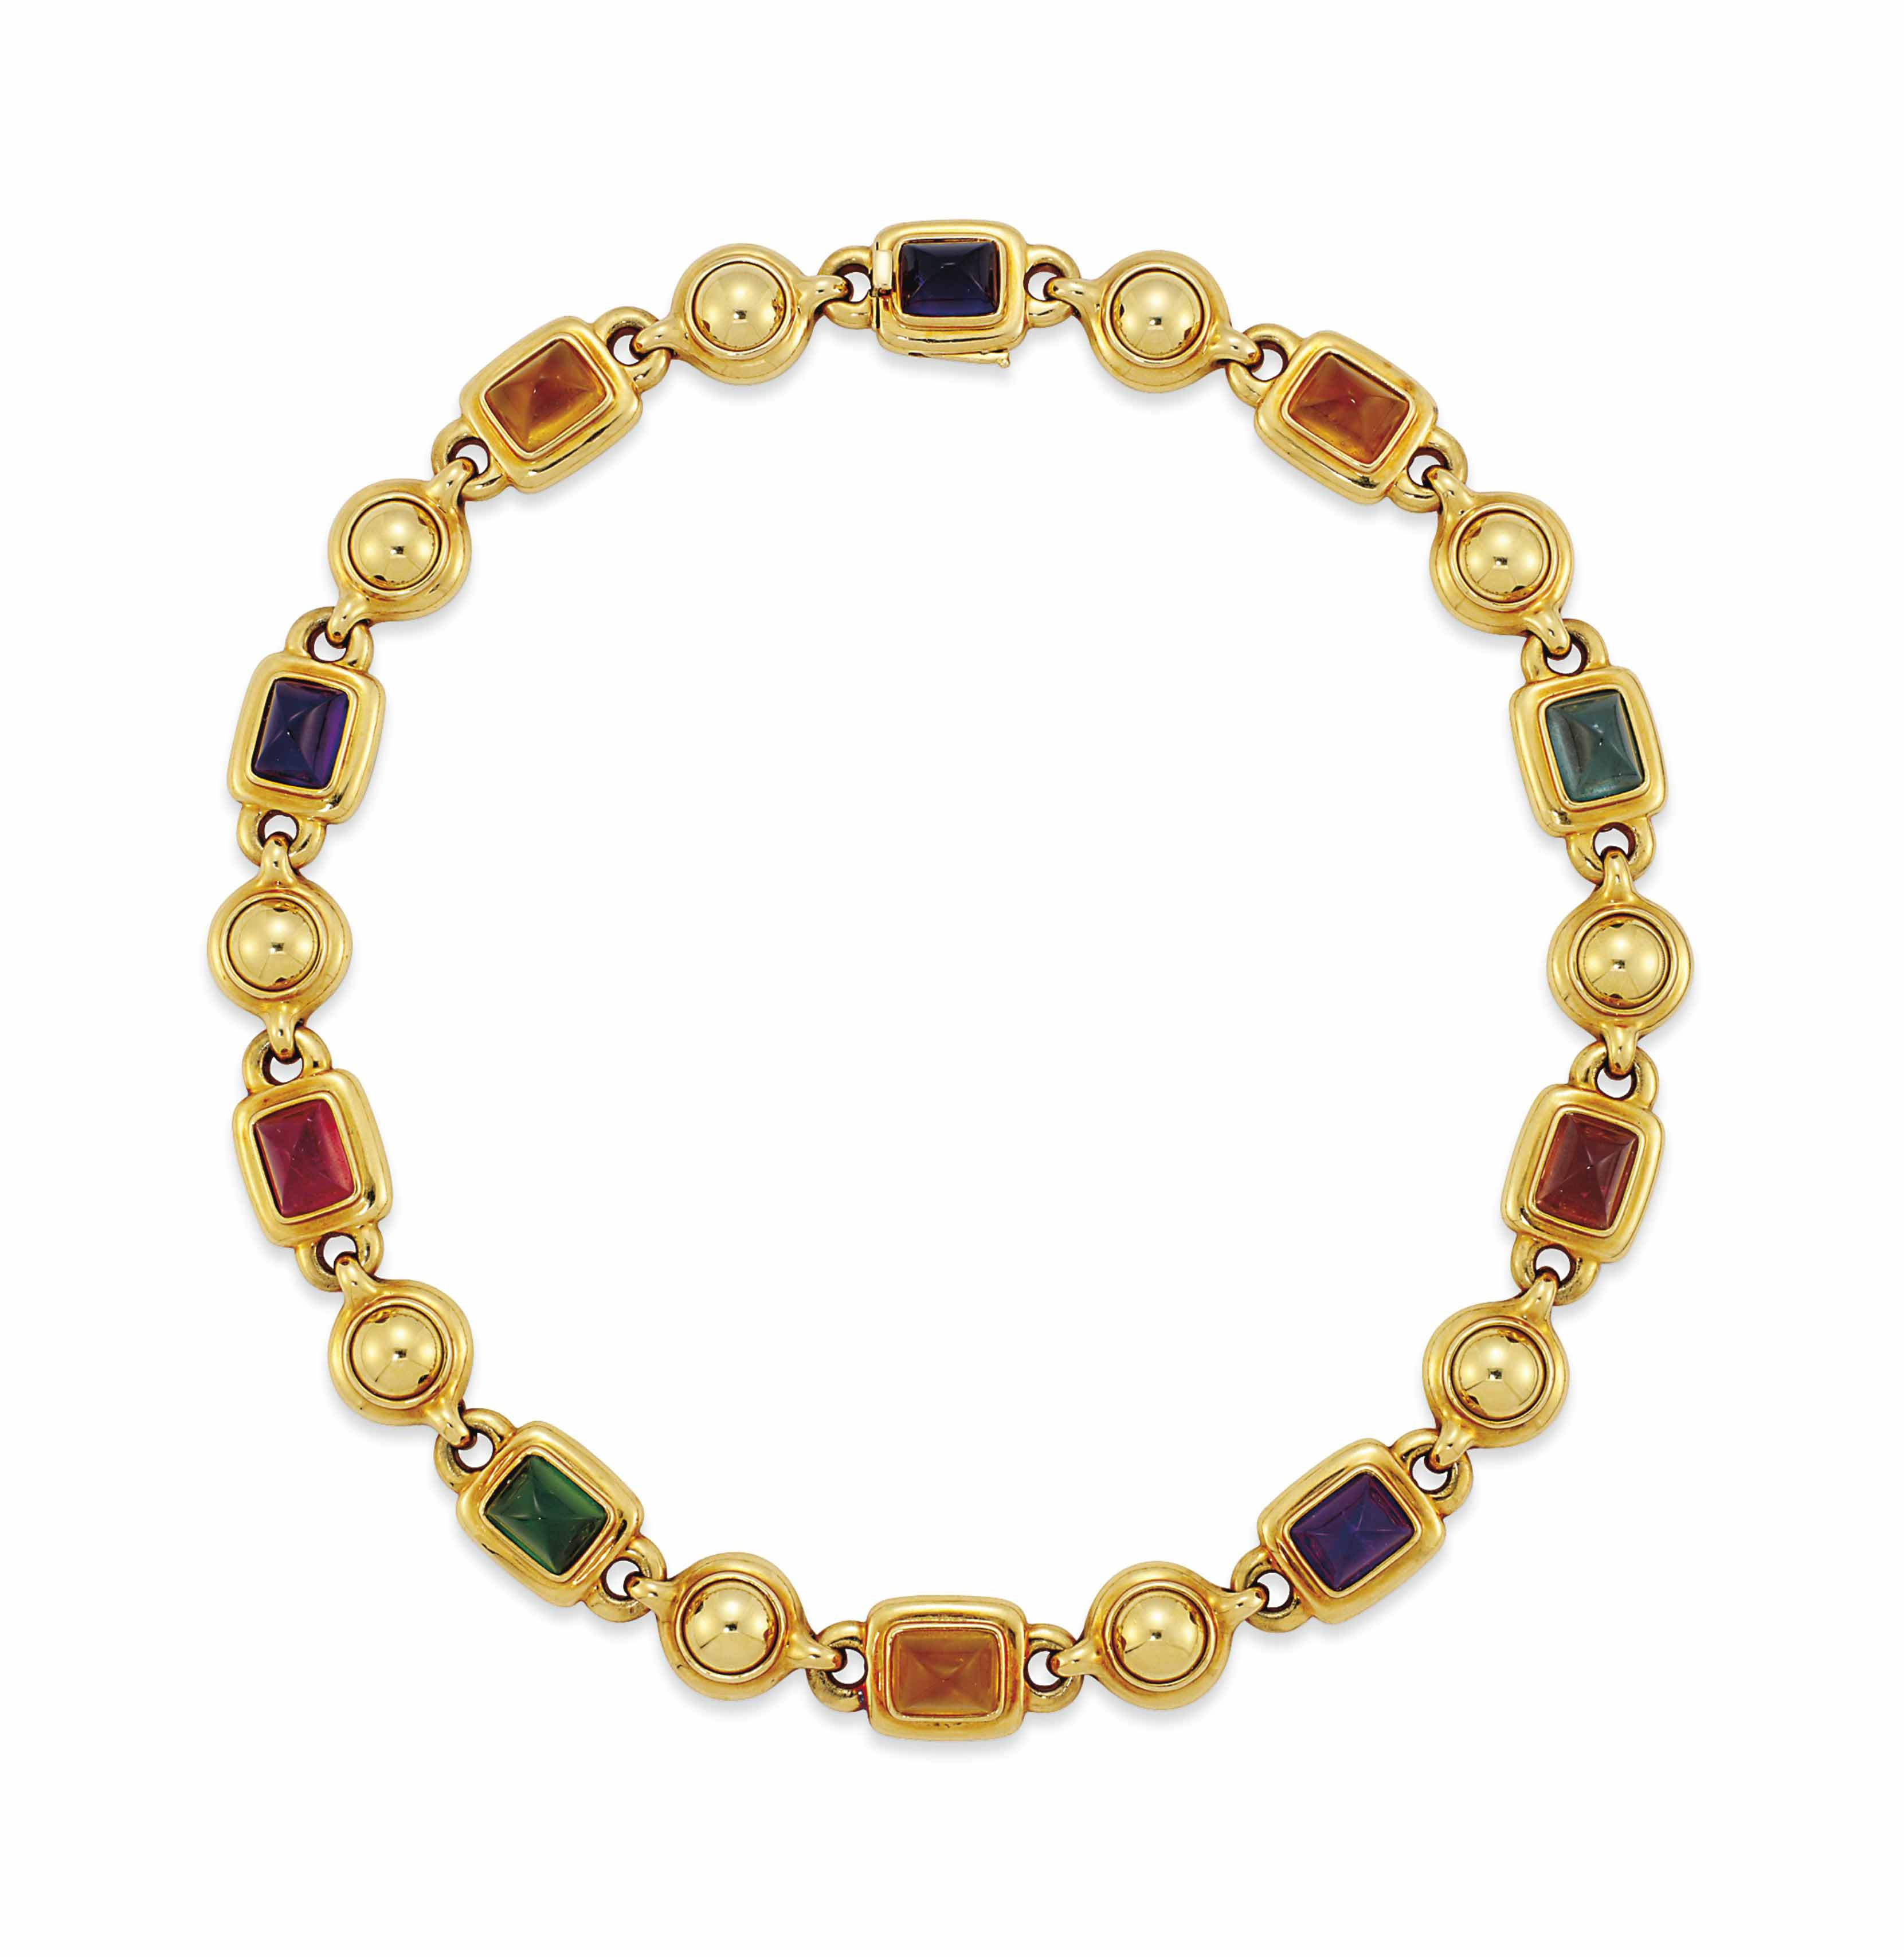 A GEM-SET NECKLACE, BY CHANEL